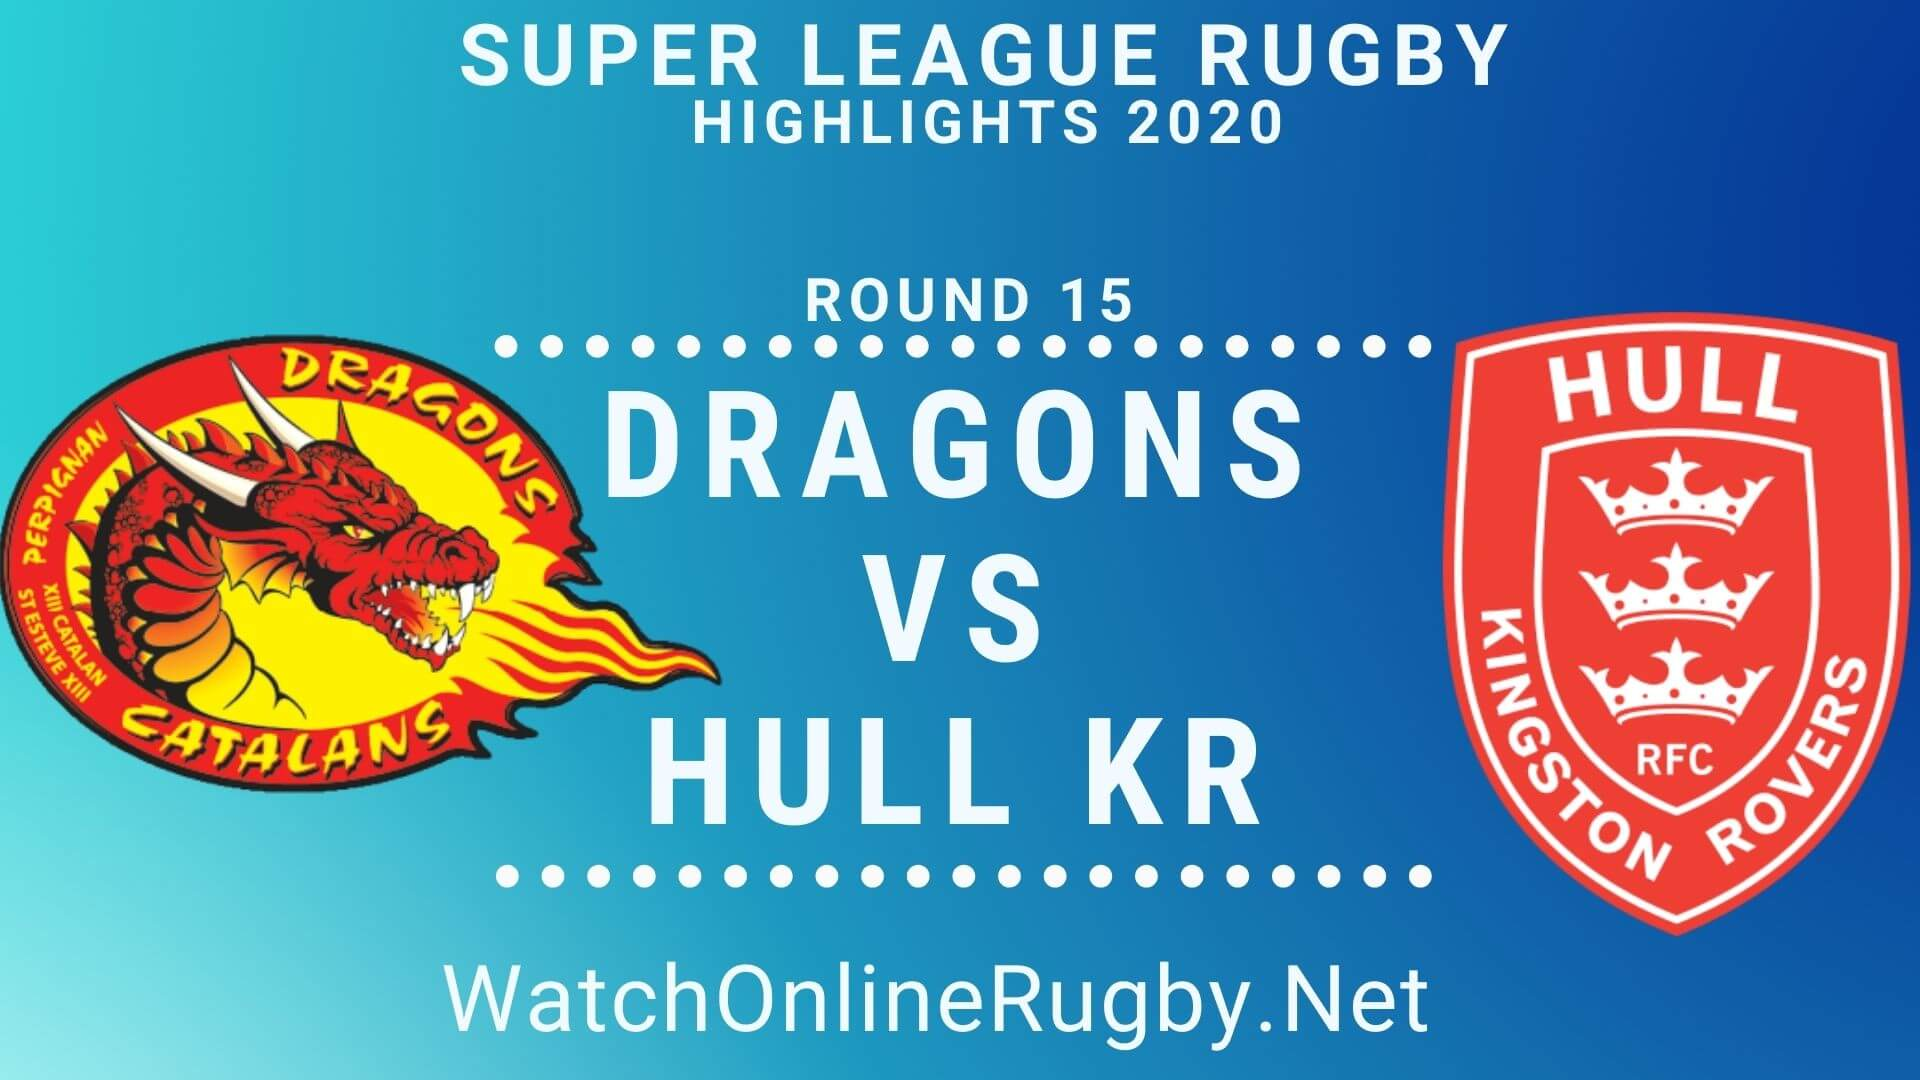 Catalans Dragons vs Hull KR Highlights 2020